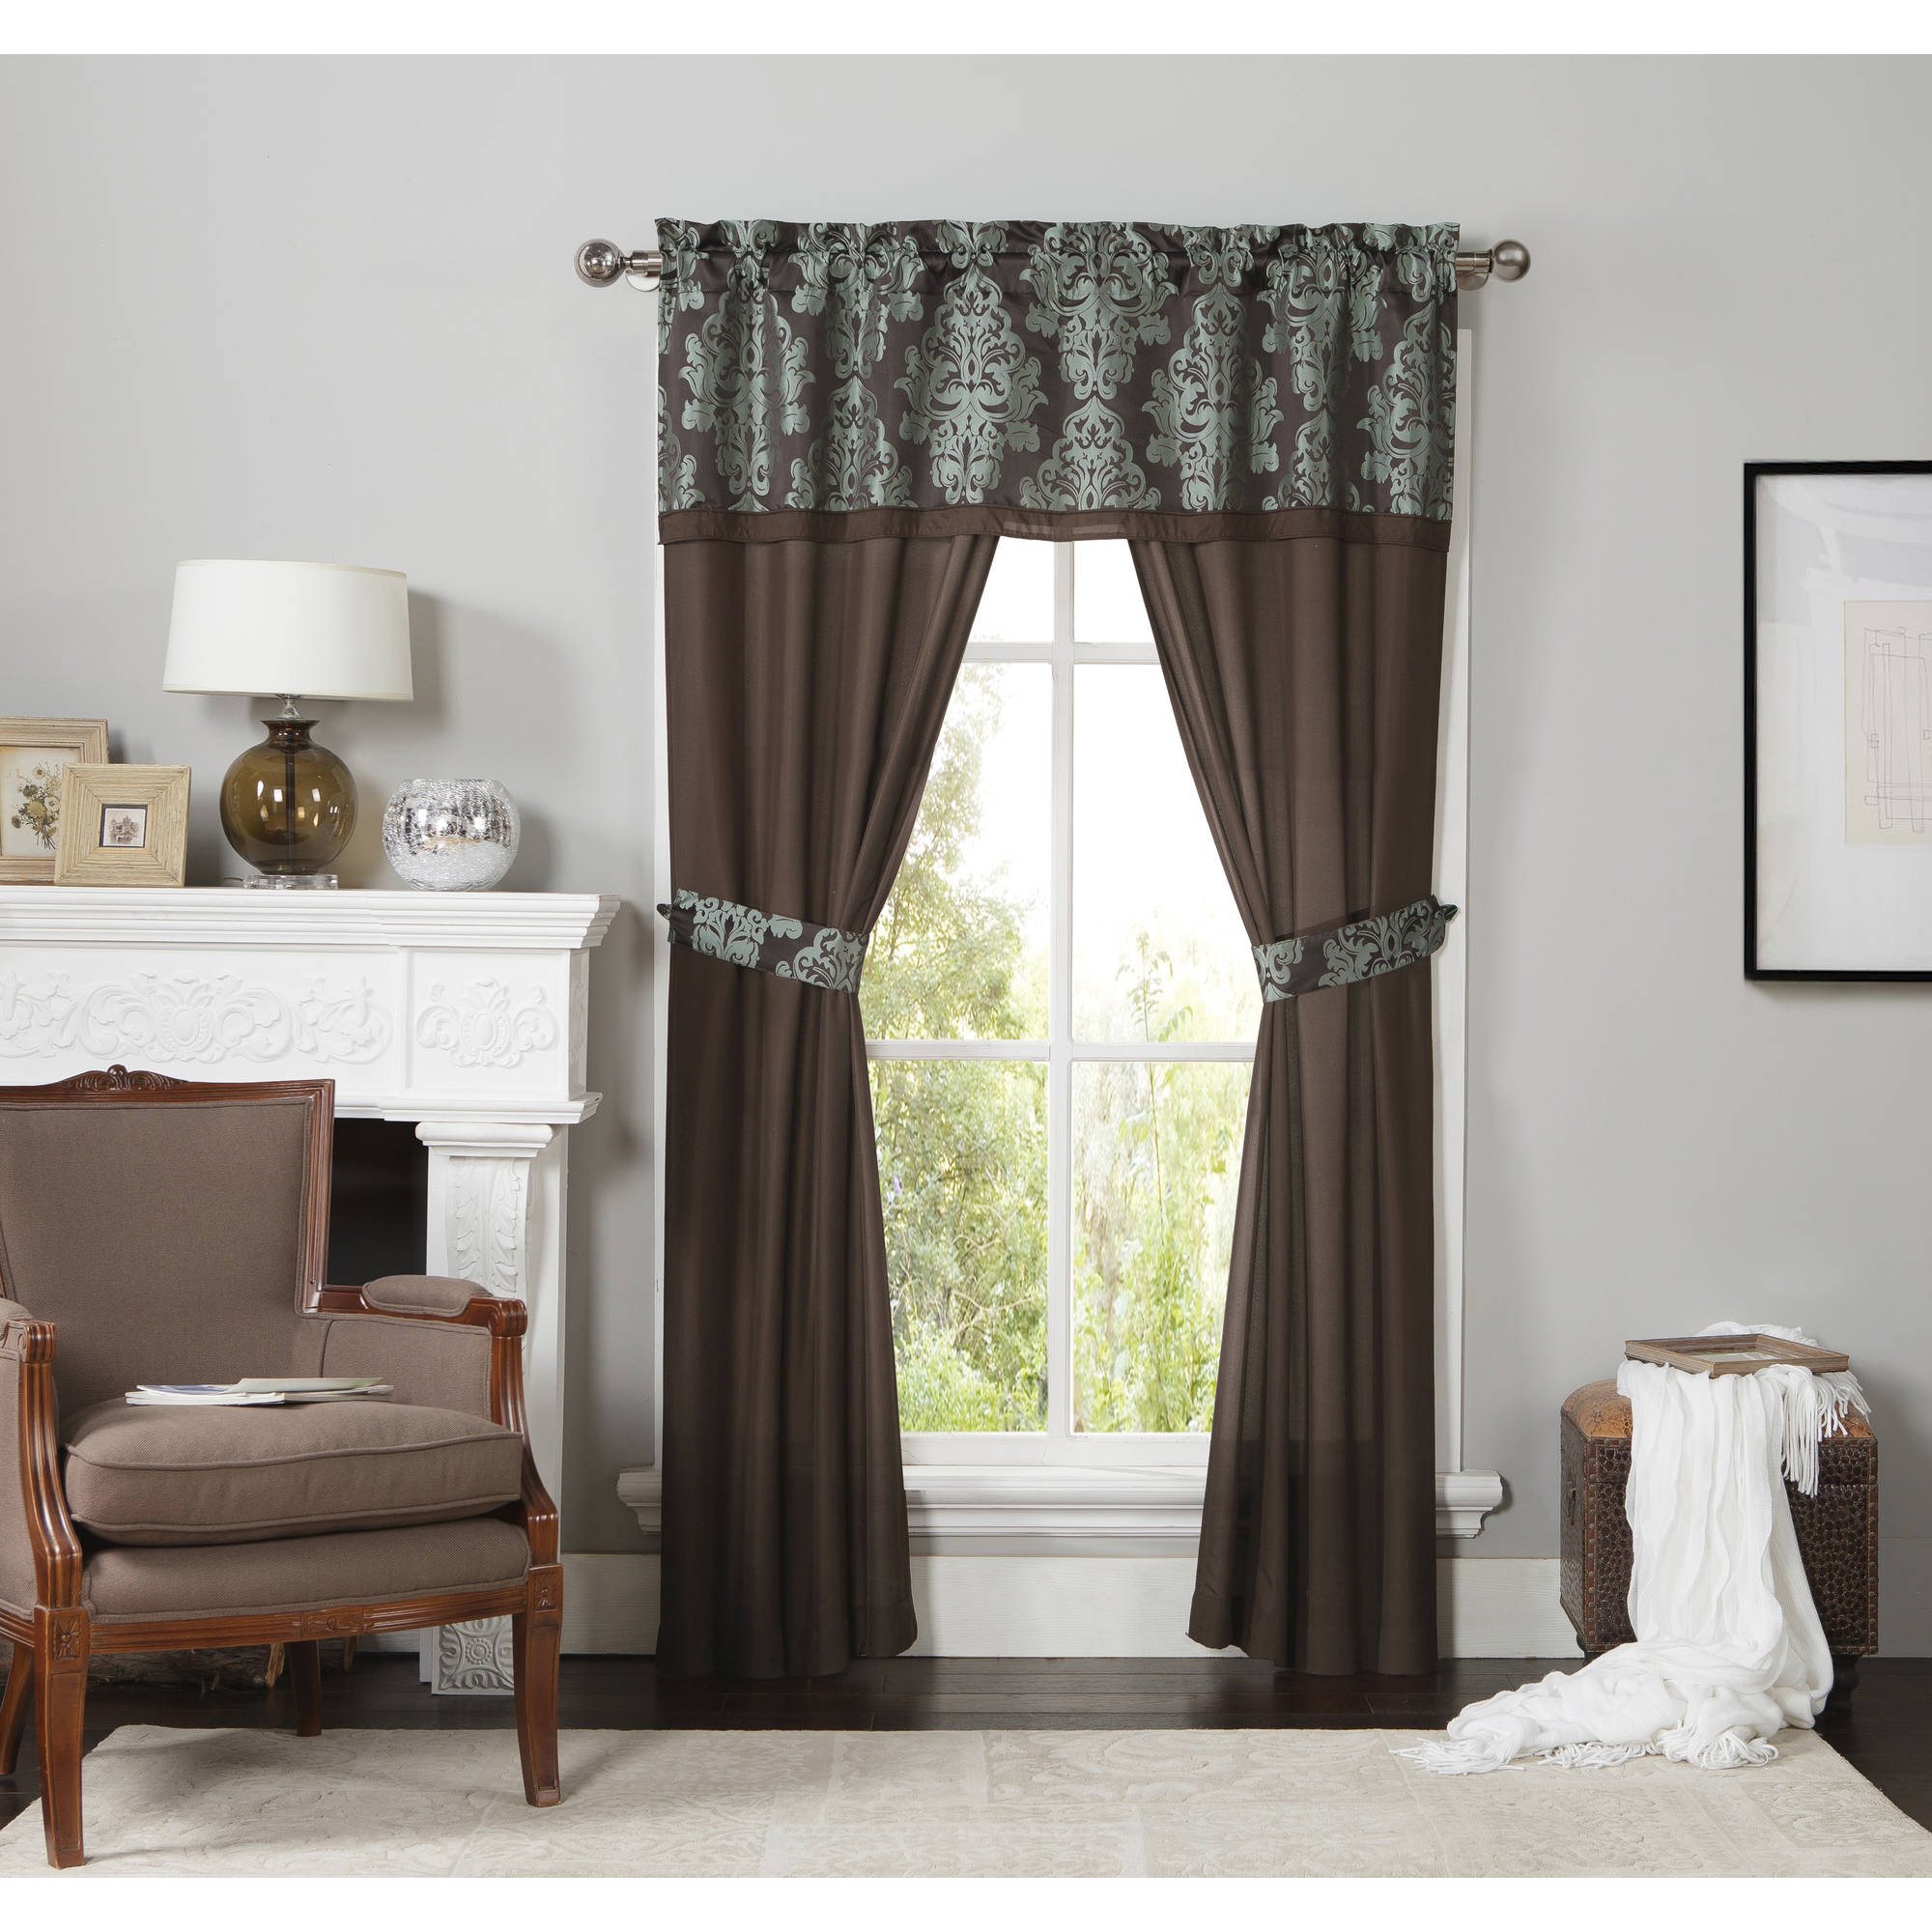 Mainstays 2-Tone Dalton Damask Complete Window Set, Curtain Panels and Valance Included